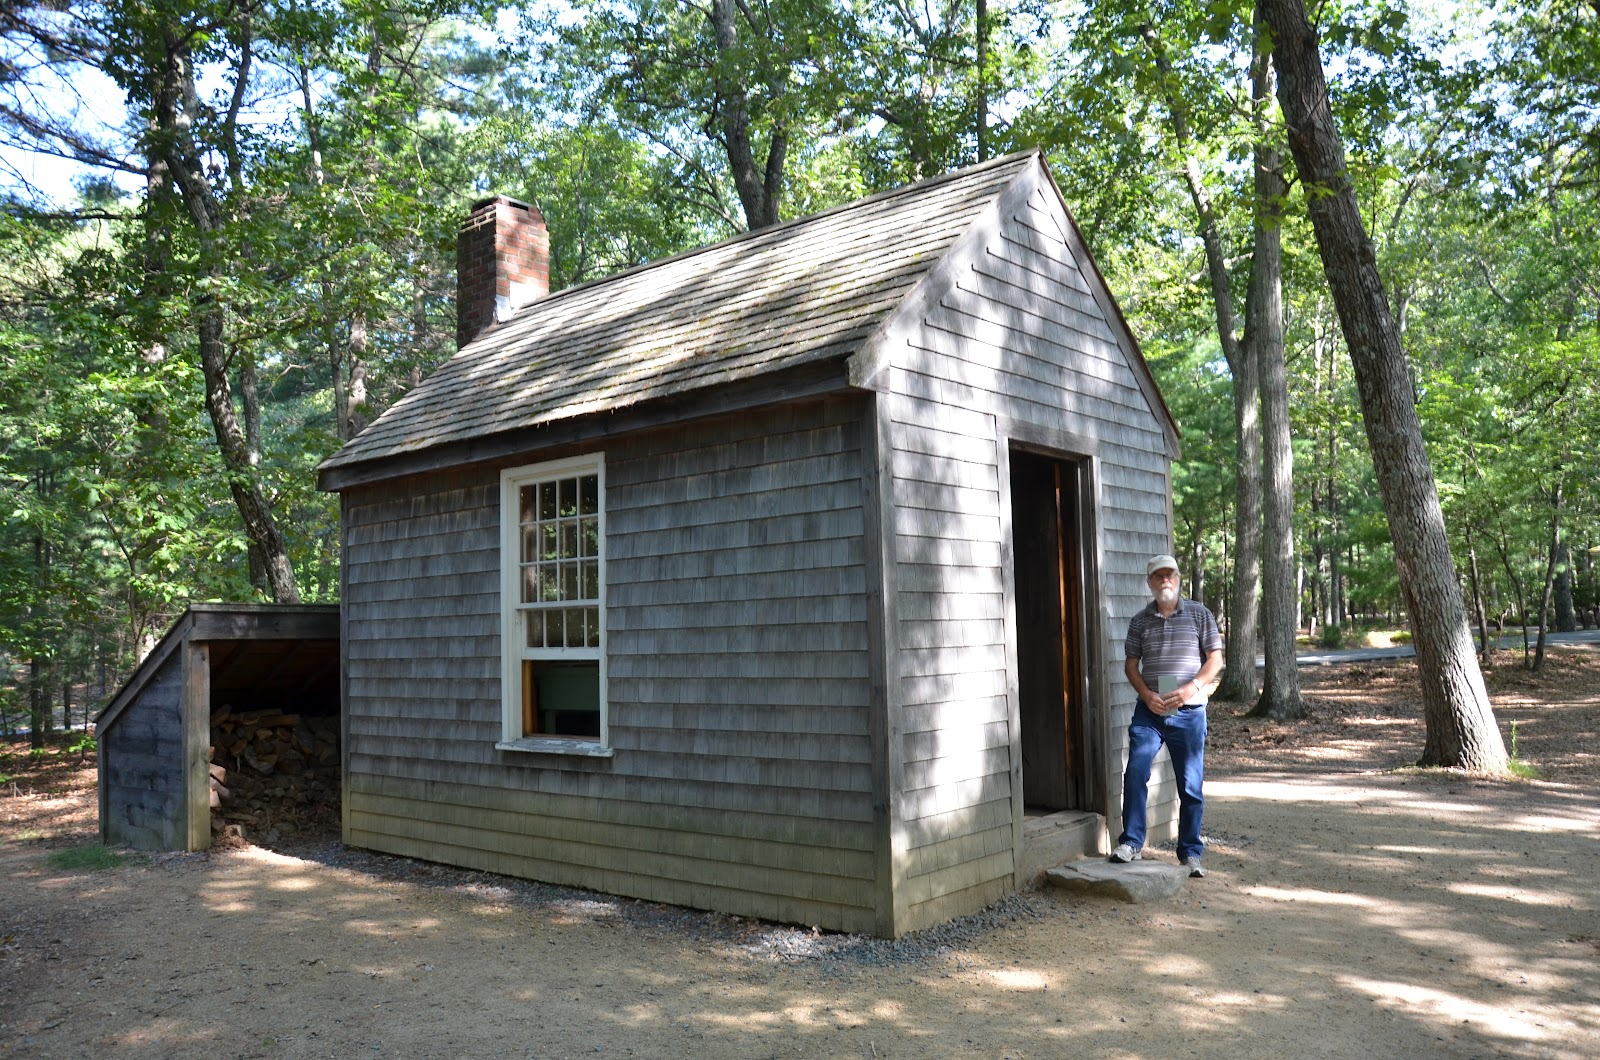 baugh s blog photo essay thoreau and walden pond a reconstruction of thoreau s walden one room hut near the entry to walden pond state reservation